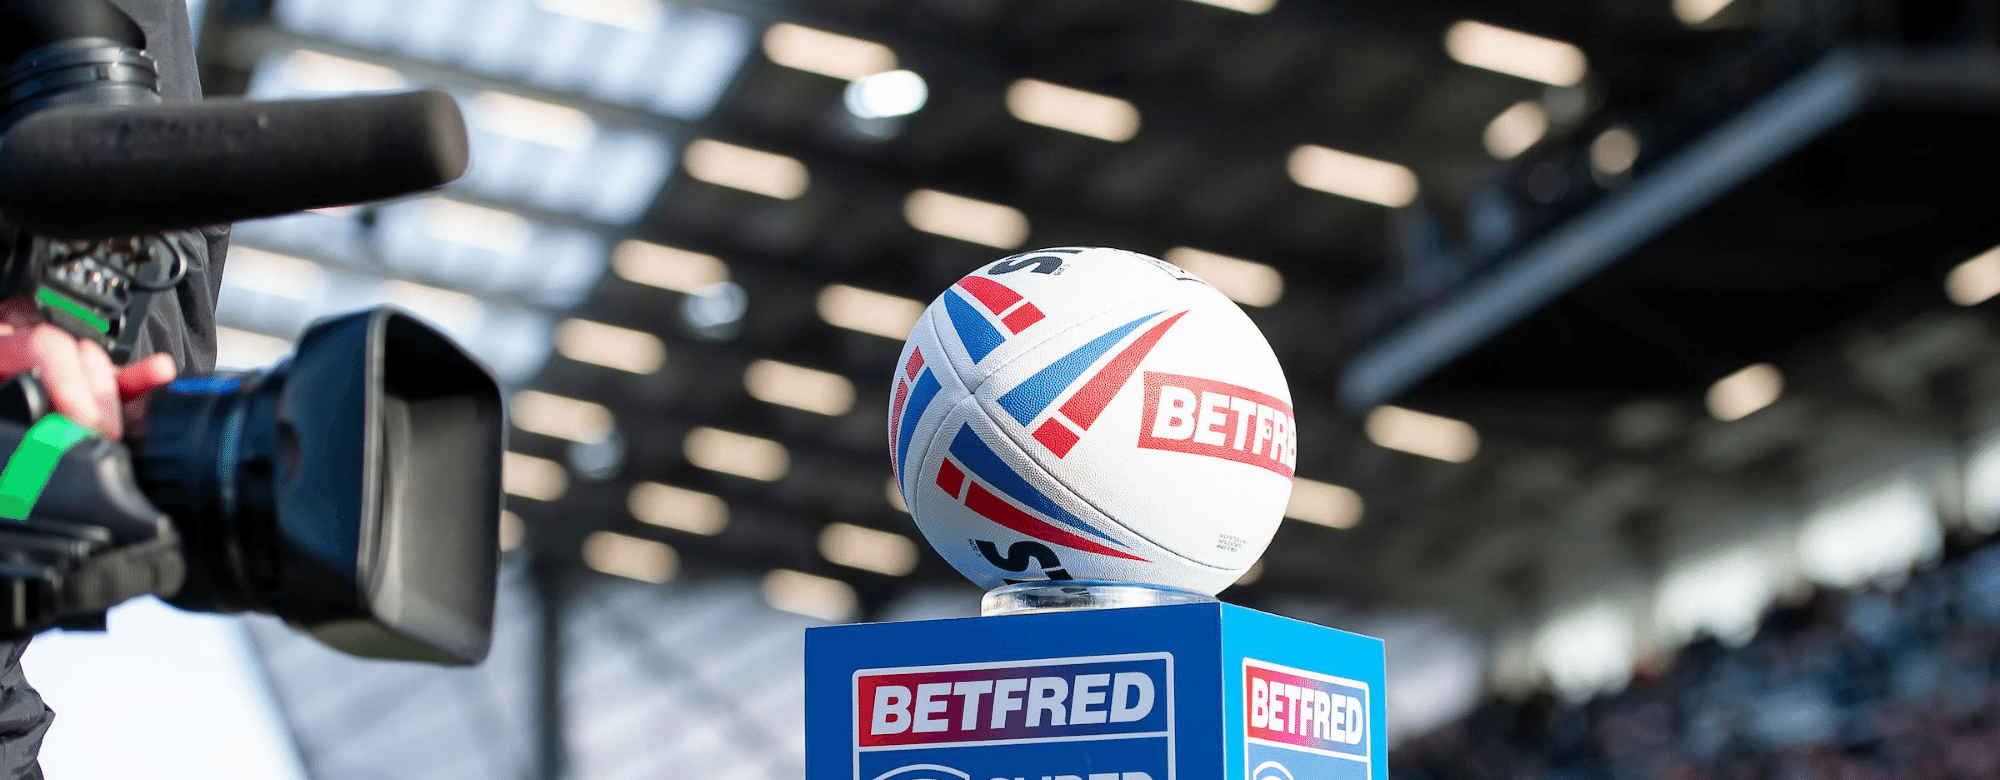 Apply For OurLeague Access Code For Hull Derby